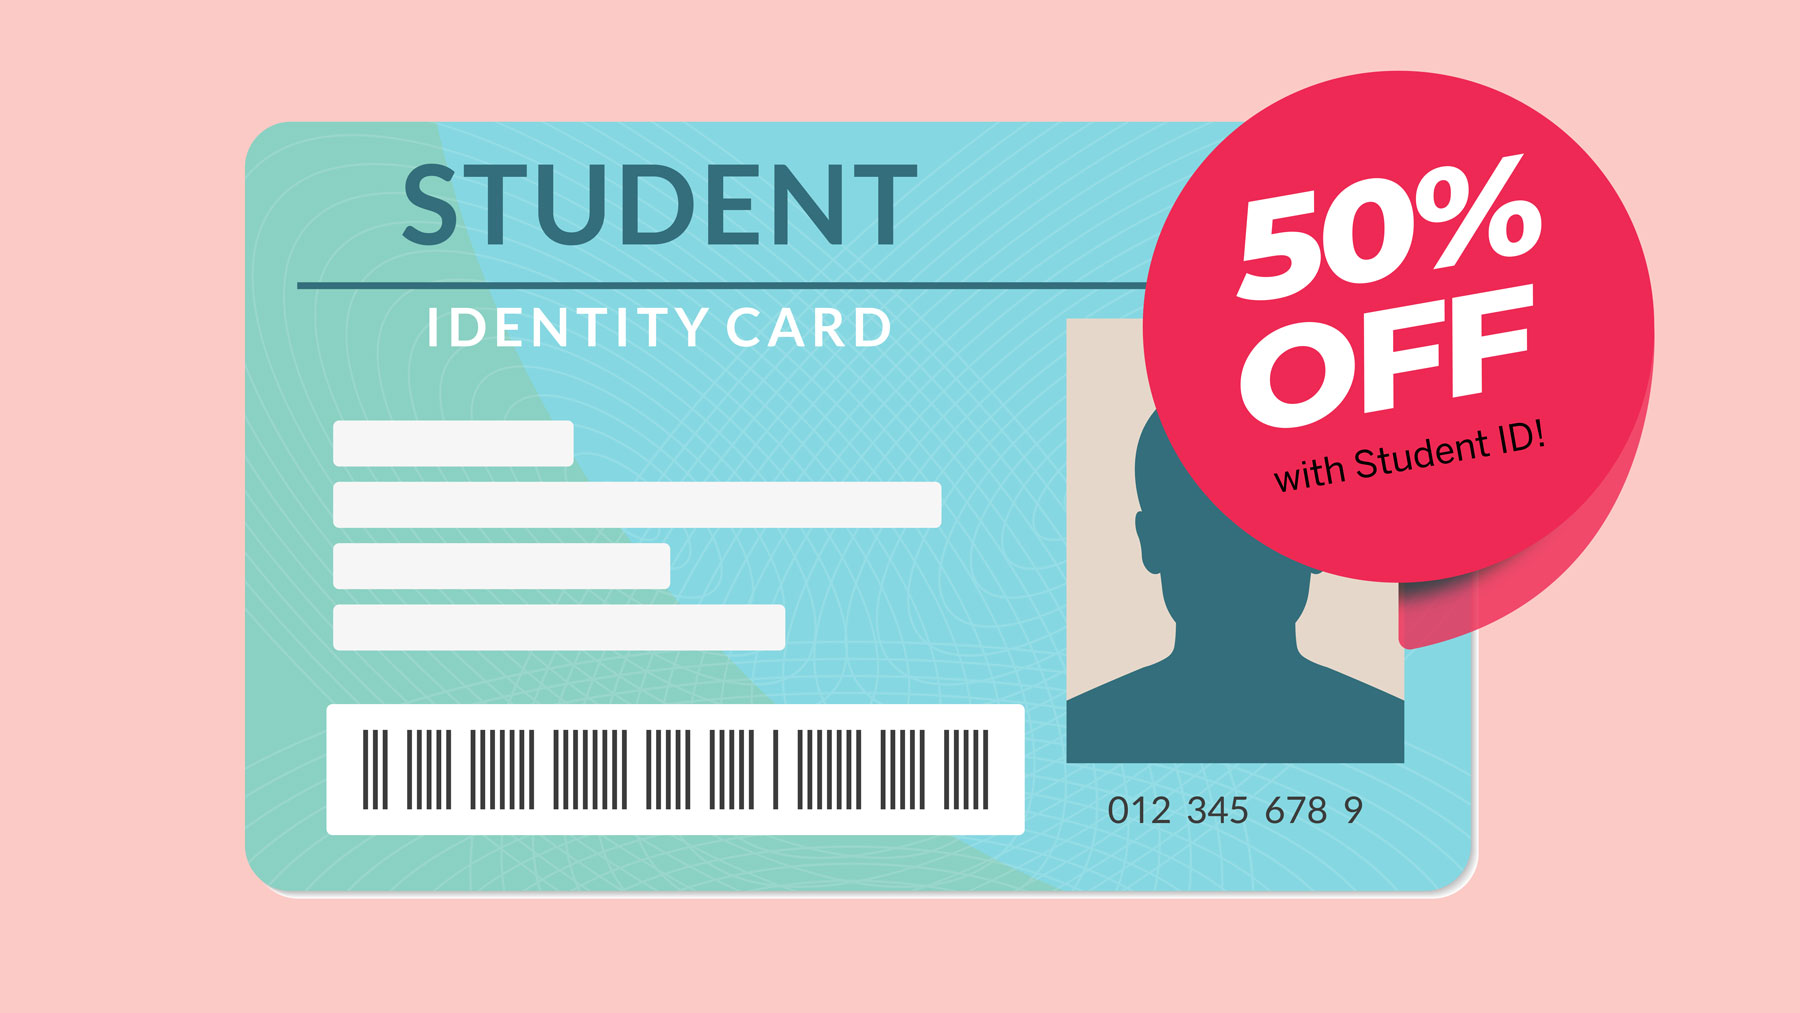 Student, Military, Birthday, and More Discounts You Don't Want to Miss id card